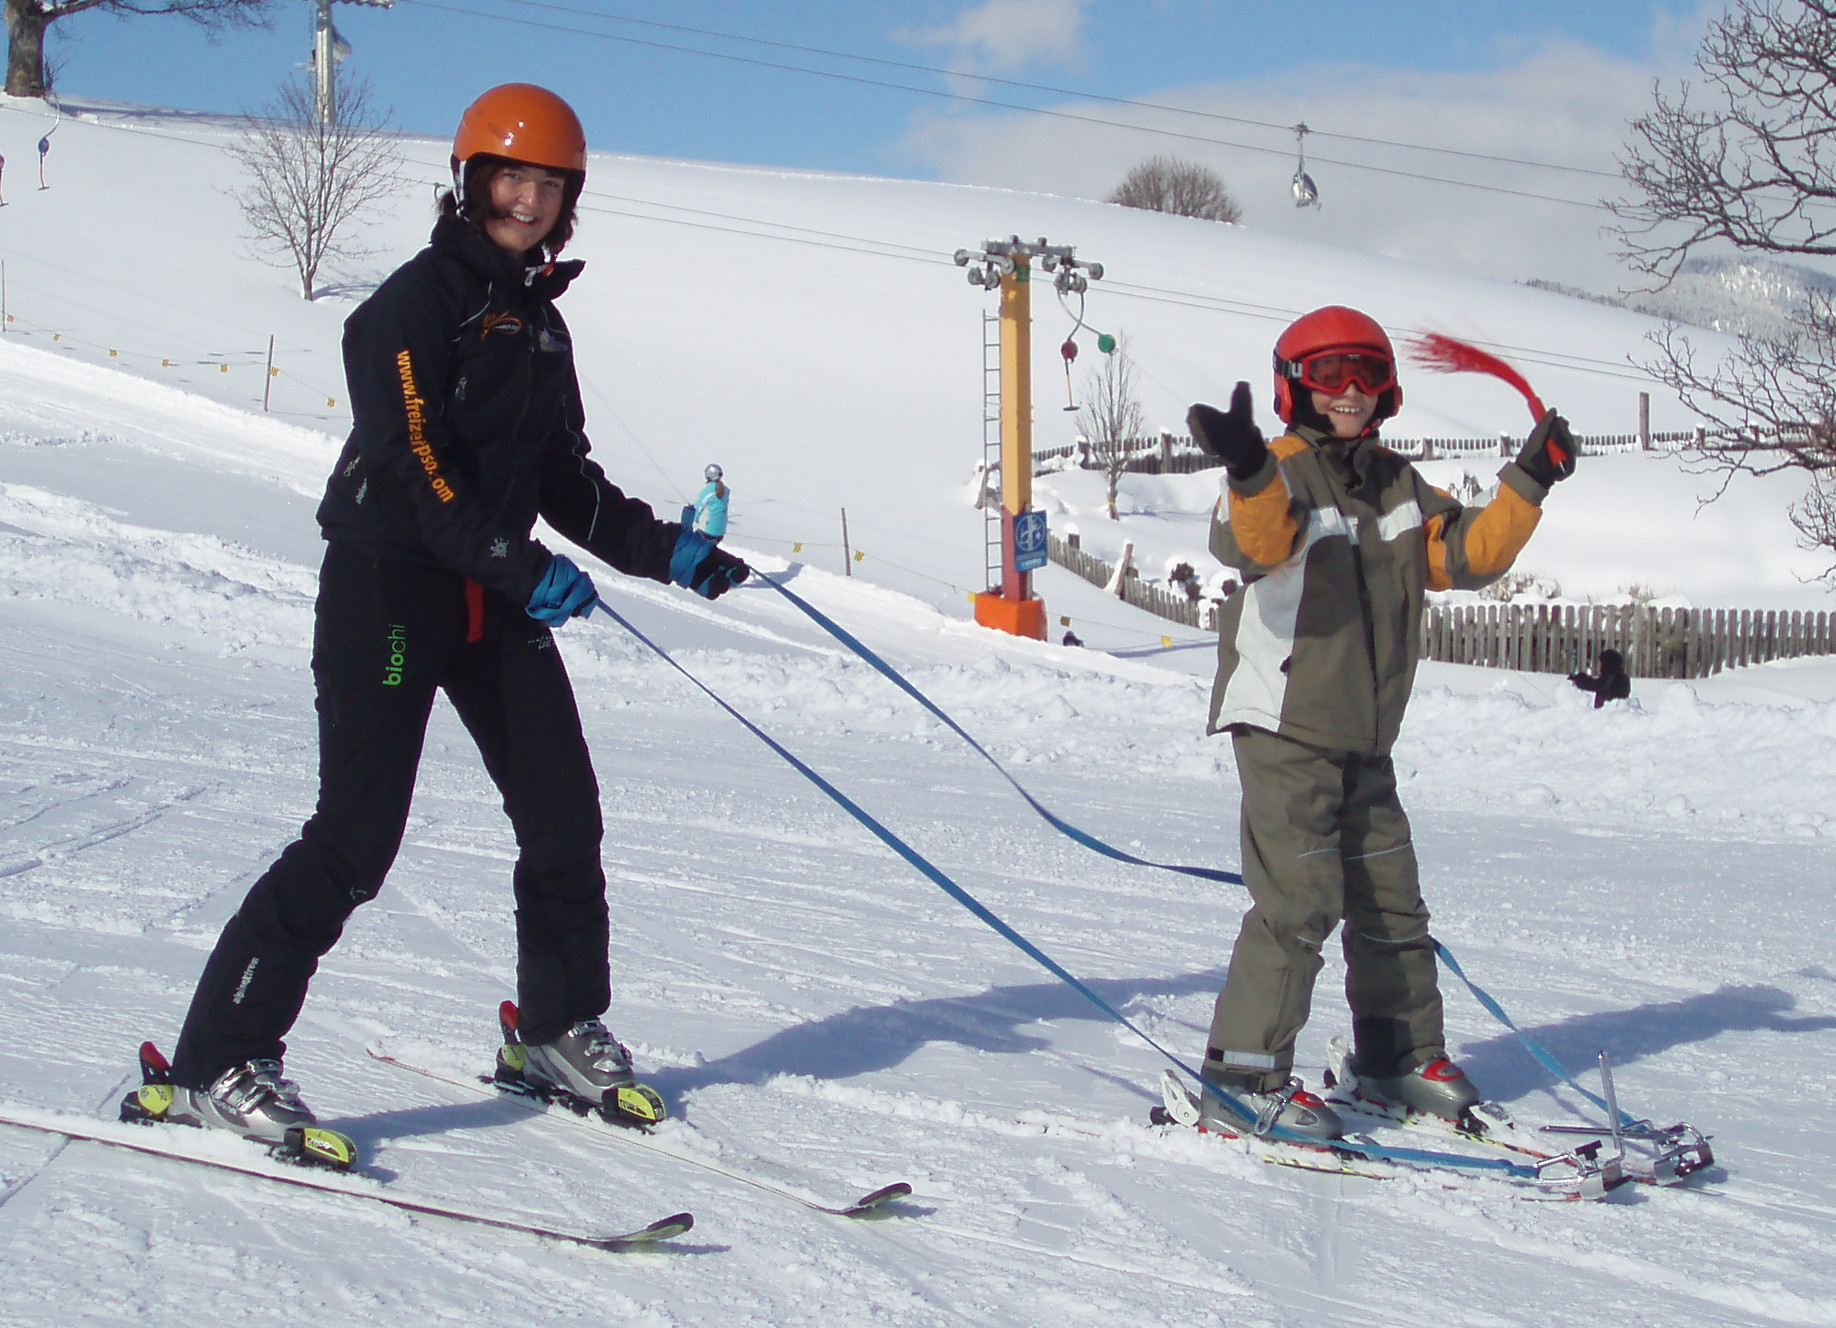 Skiing with learning disabilities